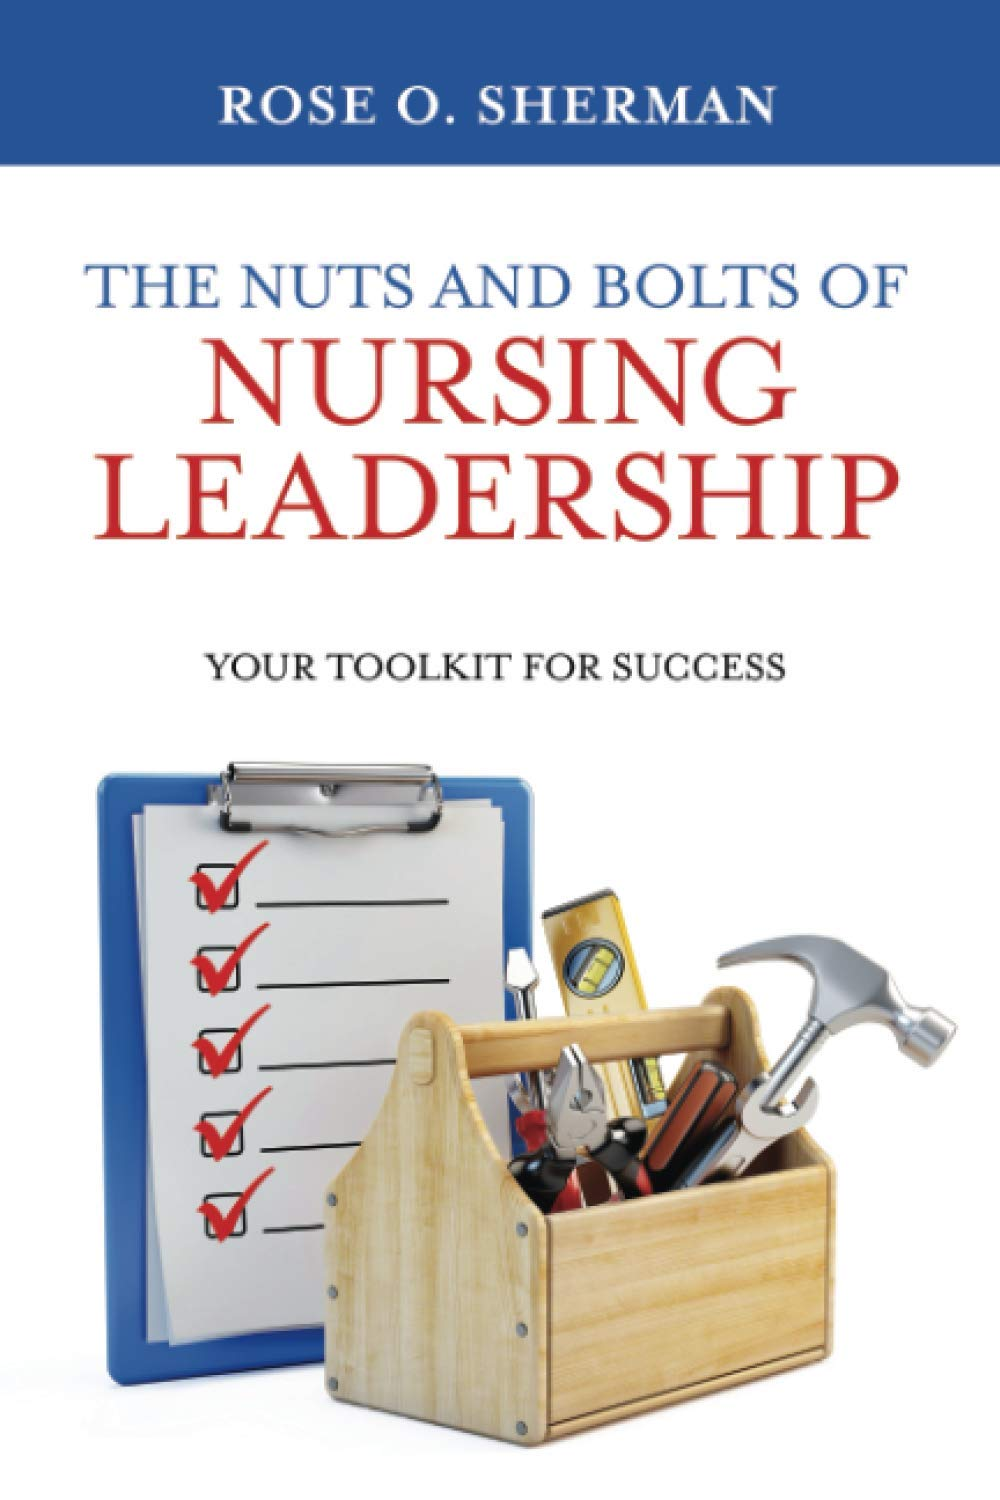 The Nuts and Bolts of Nurse Leadeship by Rose Sherman